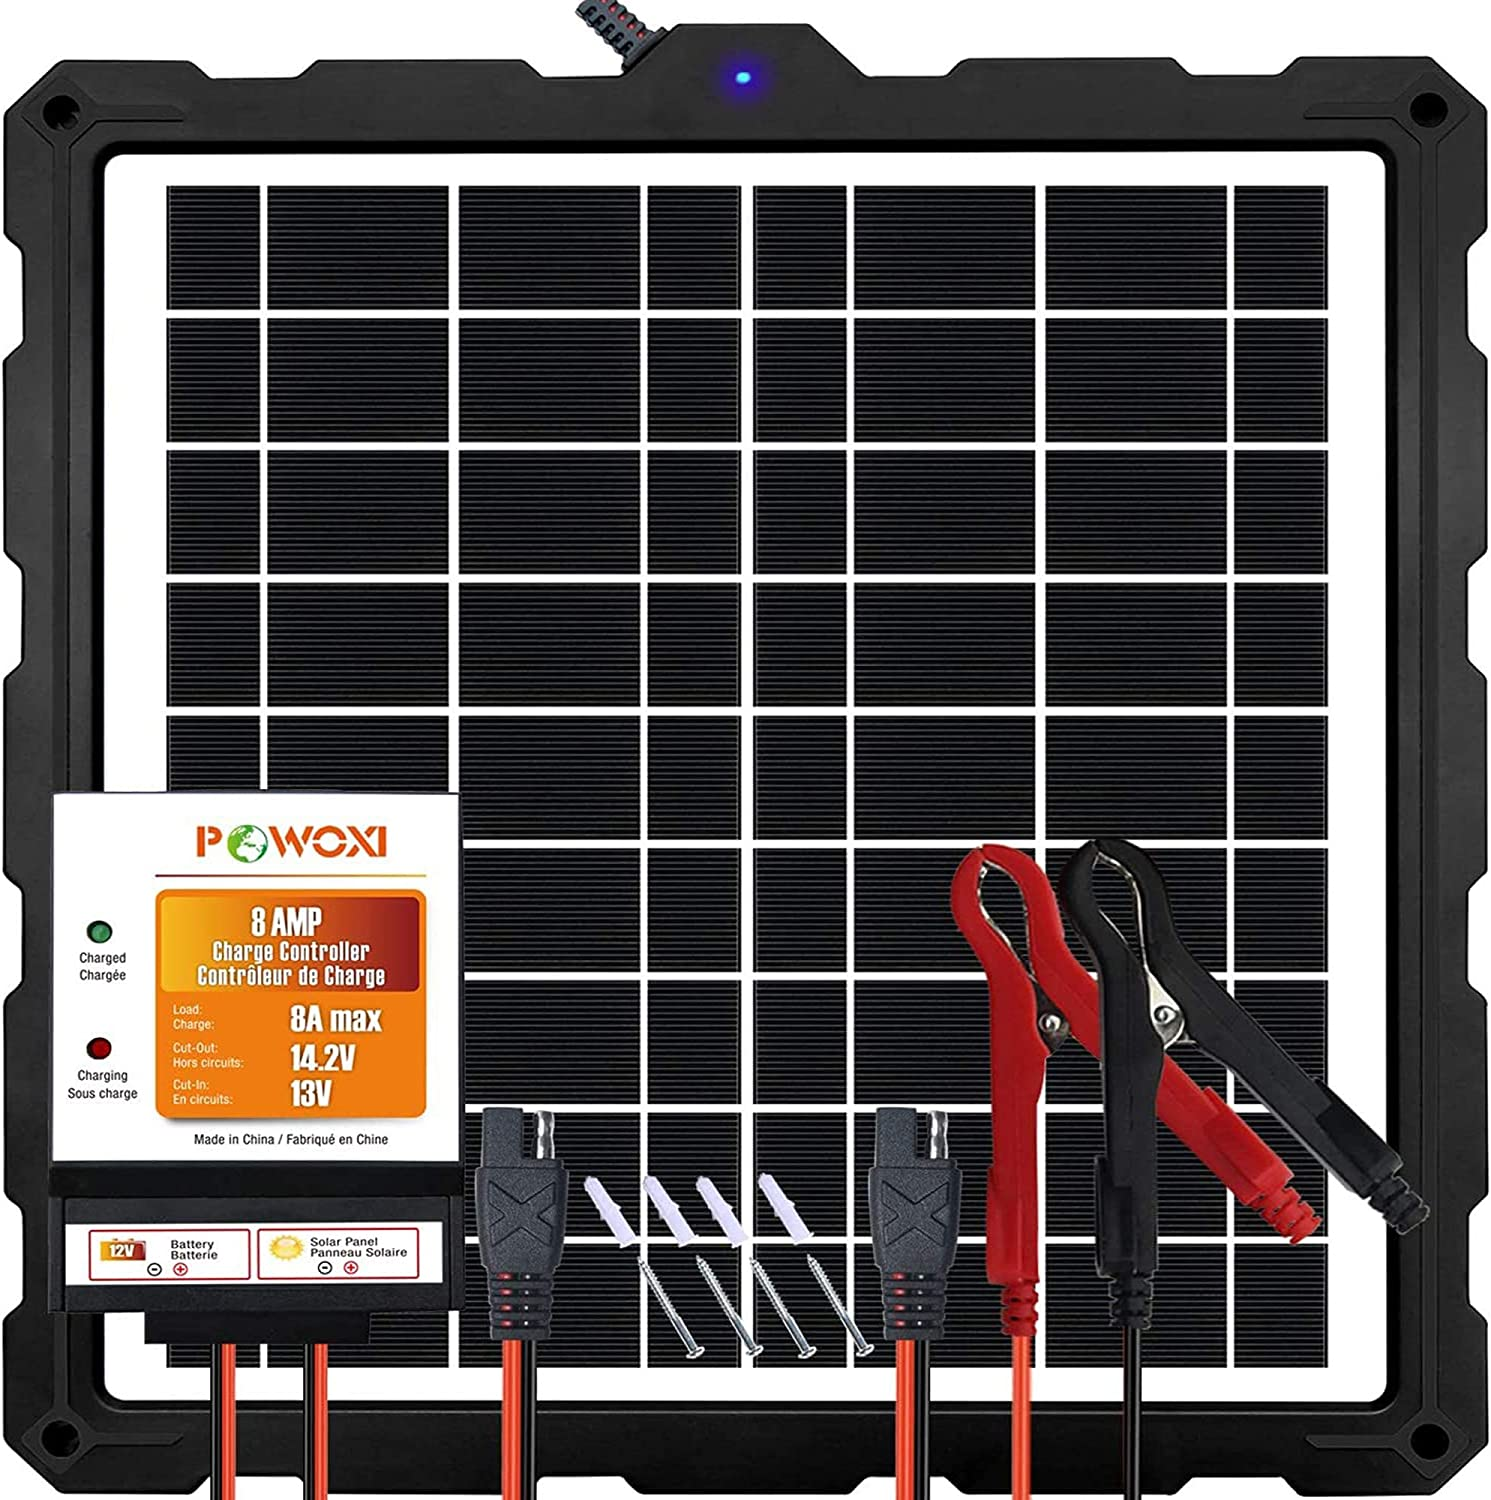 POWOXI-Upgraded-20W-Solar-Battery-Charger-Maintainer Ranking Beauty products integrated 1st place External S